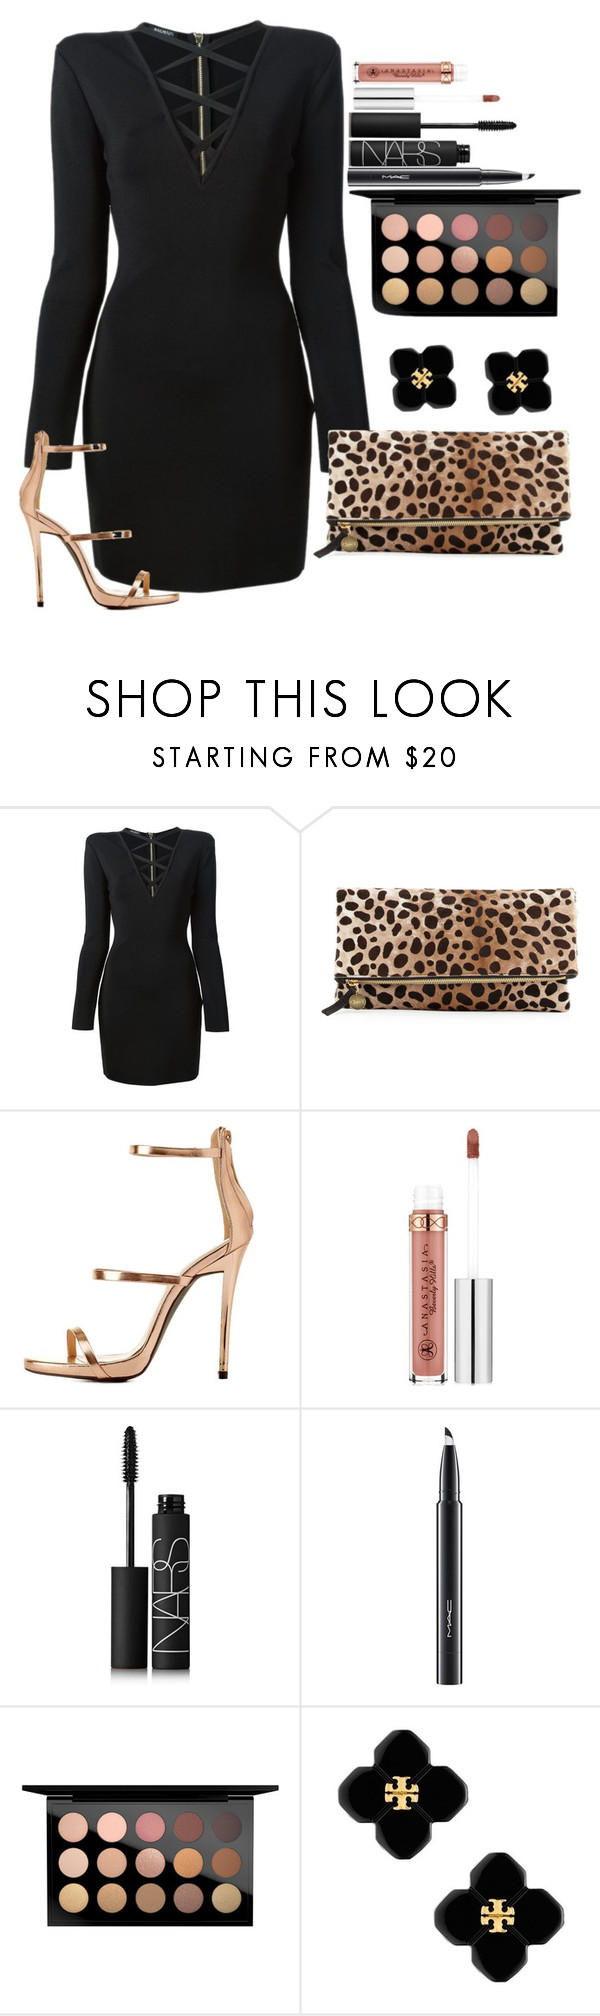 """""""Untitled #1263"""" by fabianarveloc on Polyvore featuring Balmain, Clare V., Charlotte Russe, Anastasia Beverly Hills, NARS Cosmetics, MAC Cosmetics and Tory Burch"""